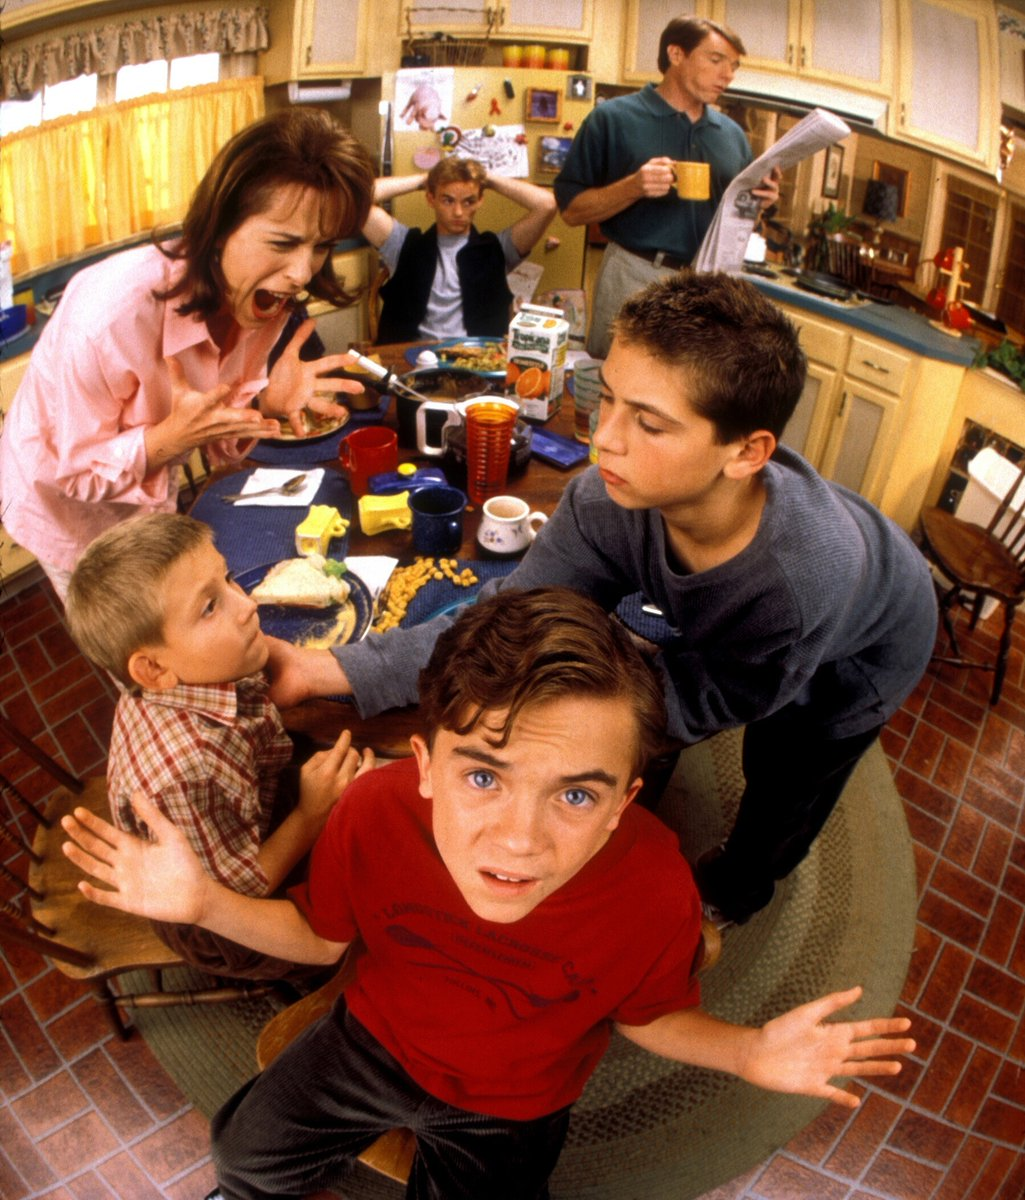 @omelete's photo on Malcolm in the Middle